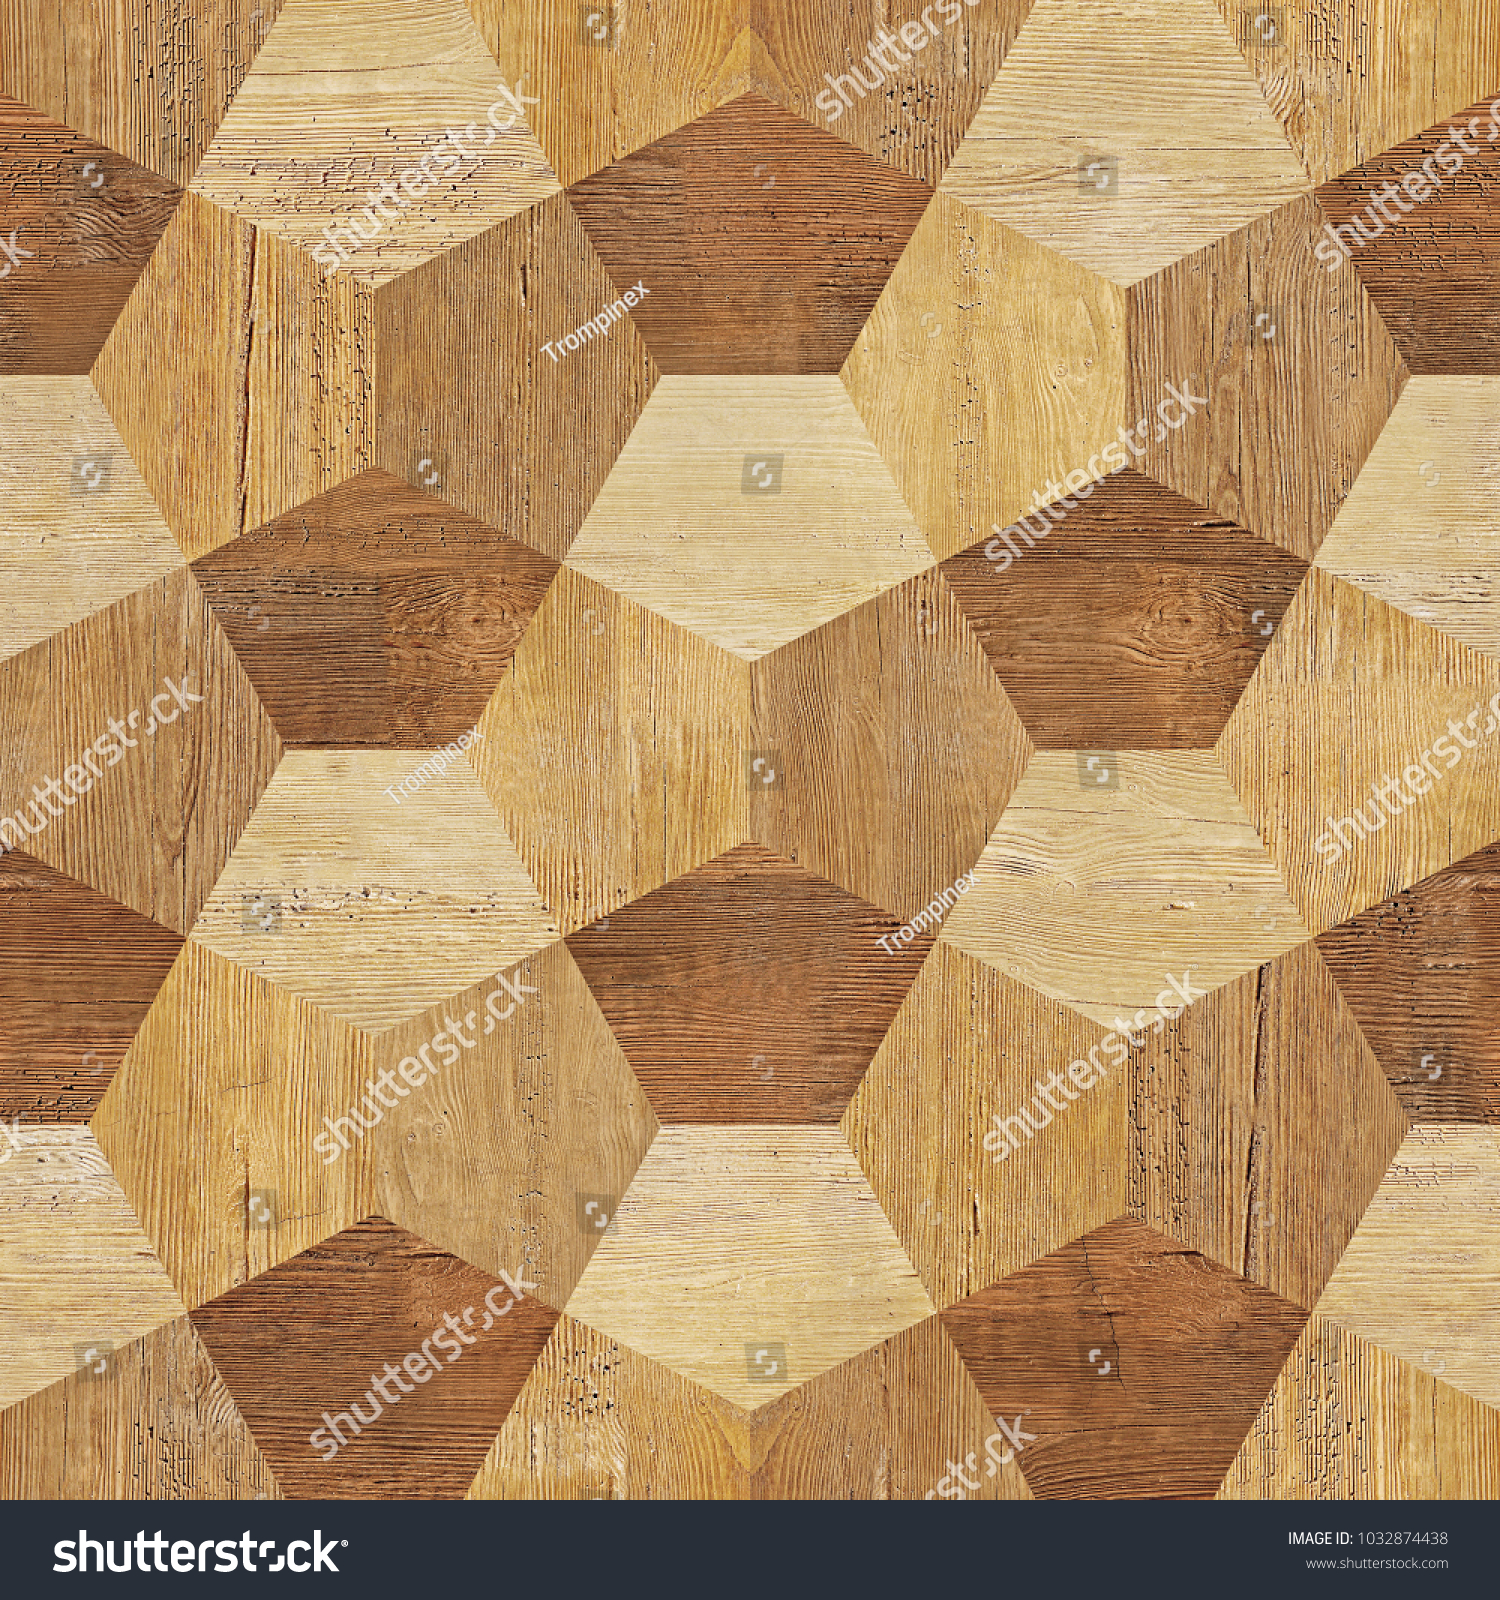 Stunning Decorative Wood Walls Gallery - The Wall Art Decorations ...